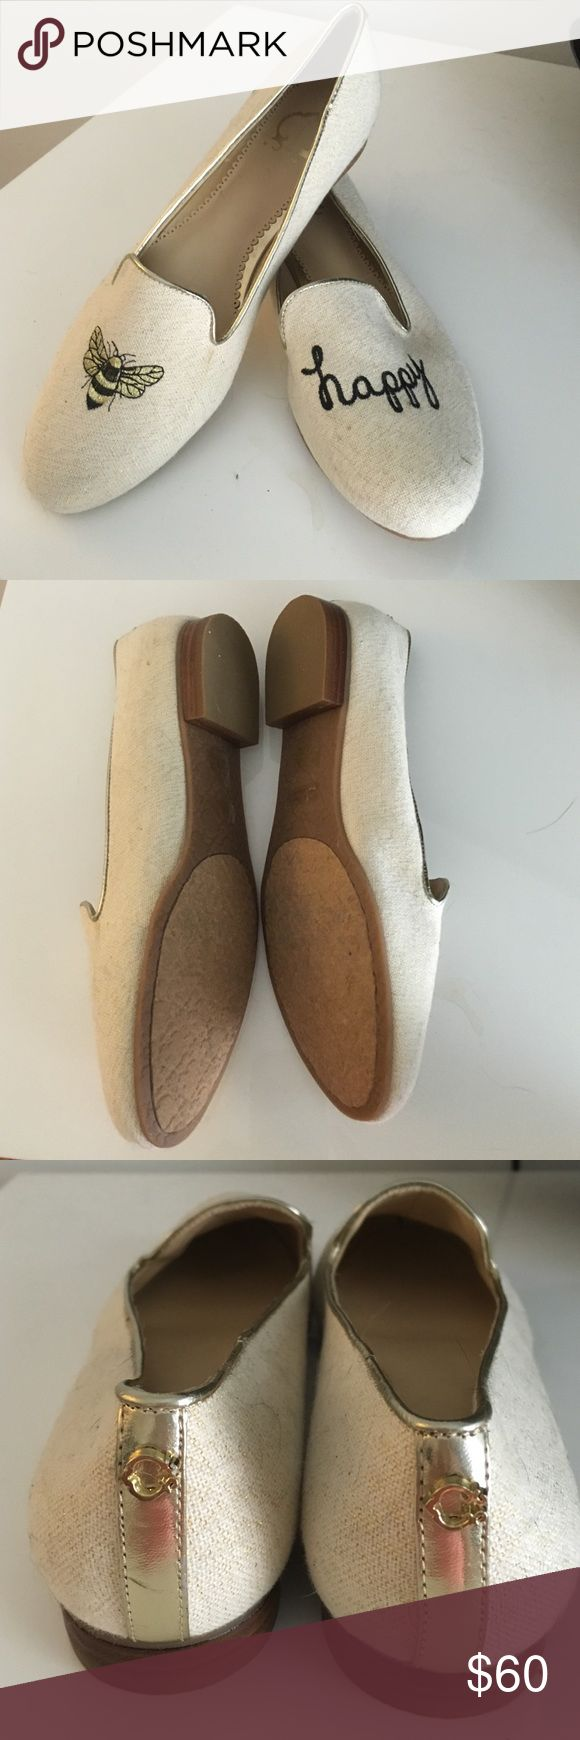 "C Wonder ""Bee Happy"" Loafers NWOT 7 1/2 Super cute C Wonder Bee Happy loafers. Size 7 1/2 Never worn. Slight discoloration from storage please see pics. Beautiful embroidery of ""bee happy"". C Wonder emblem on heel. So sad this company closed! C Wonder Shoes Flats & Loafers"